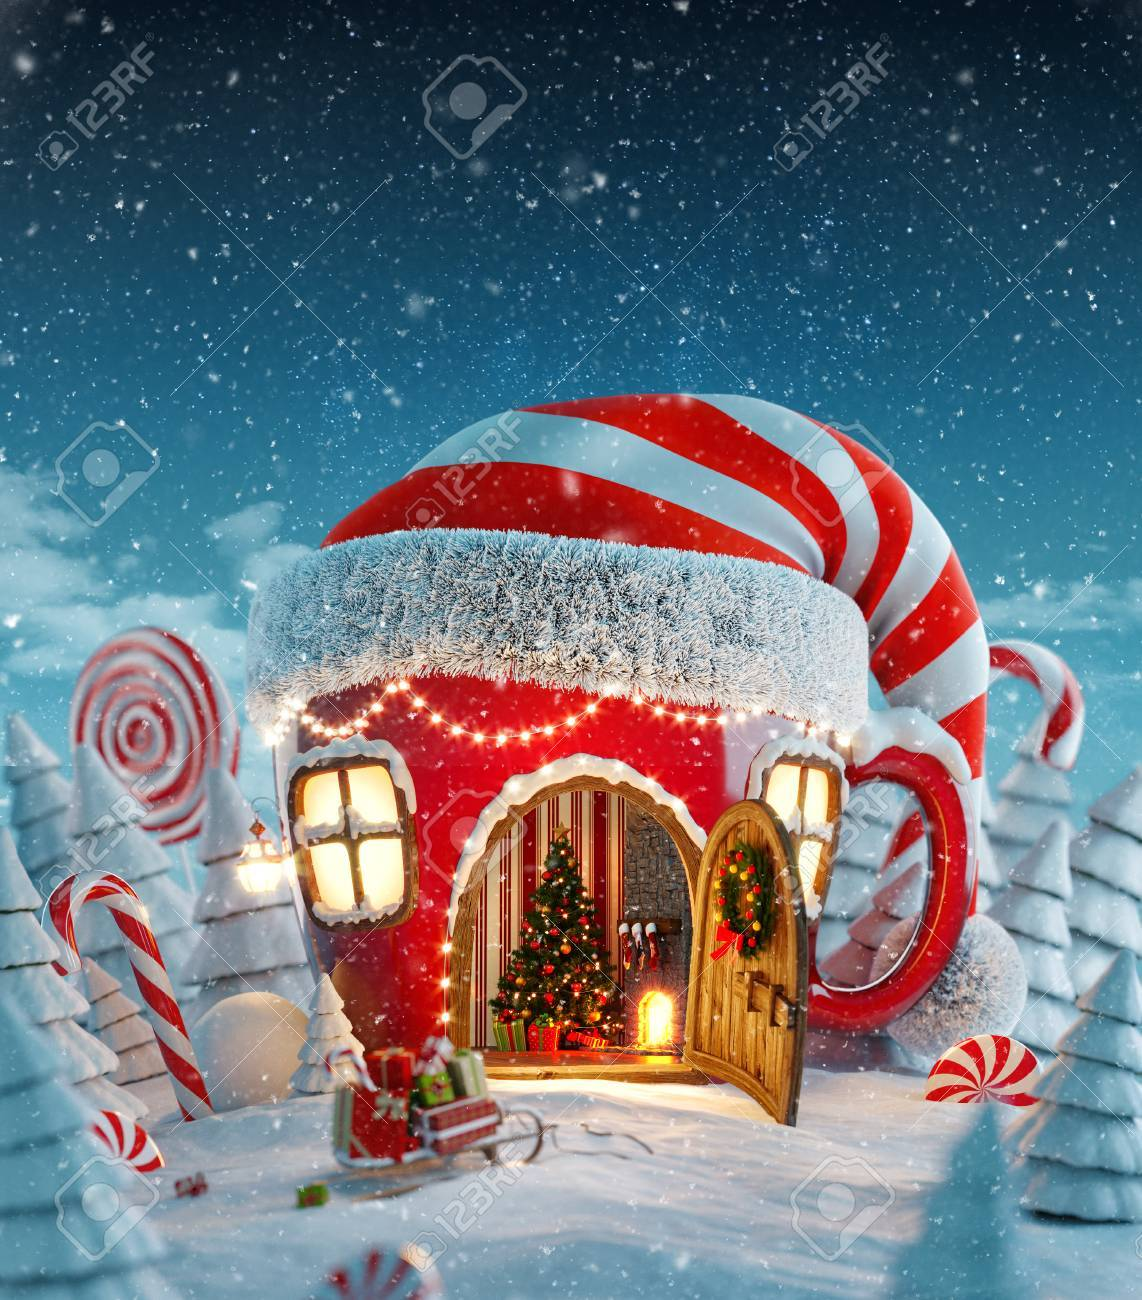 Amazing fairy house in elfs hat decorated at christmas in shape of tea cup with opened door and fireplace inside in magical forest. Unusual christmas 3d illustration postcard - 89399035